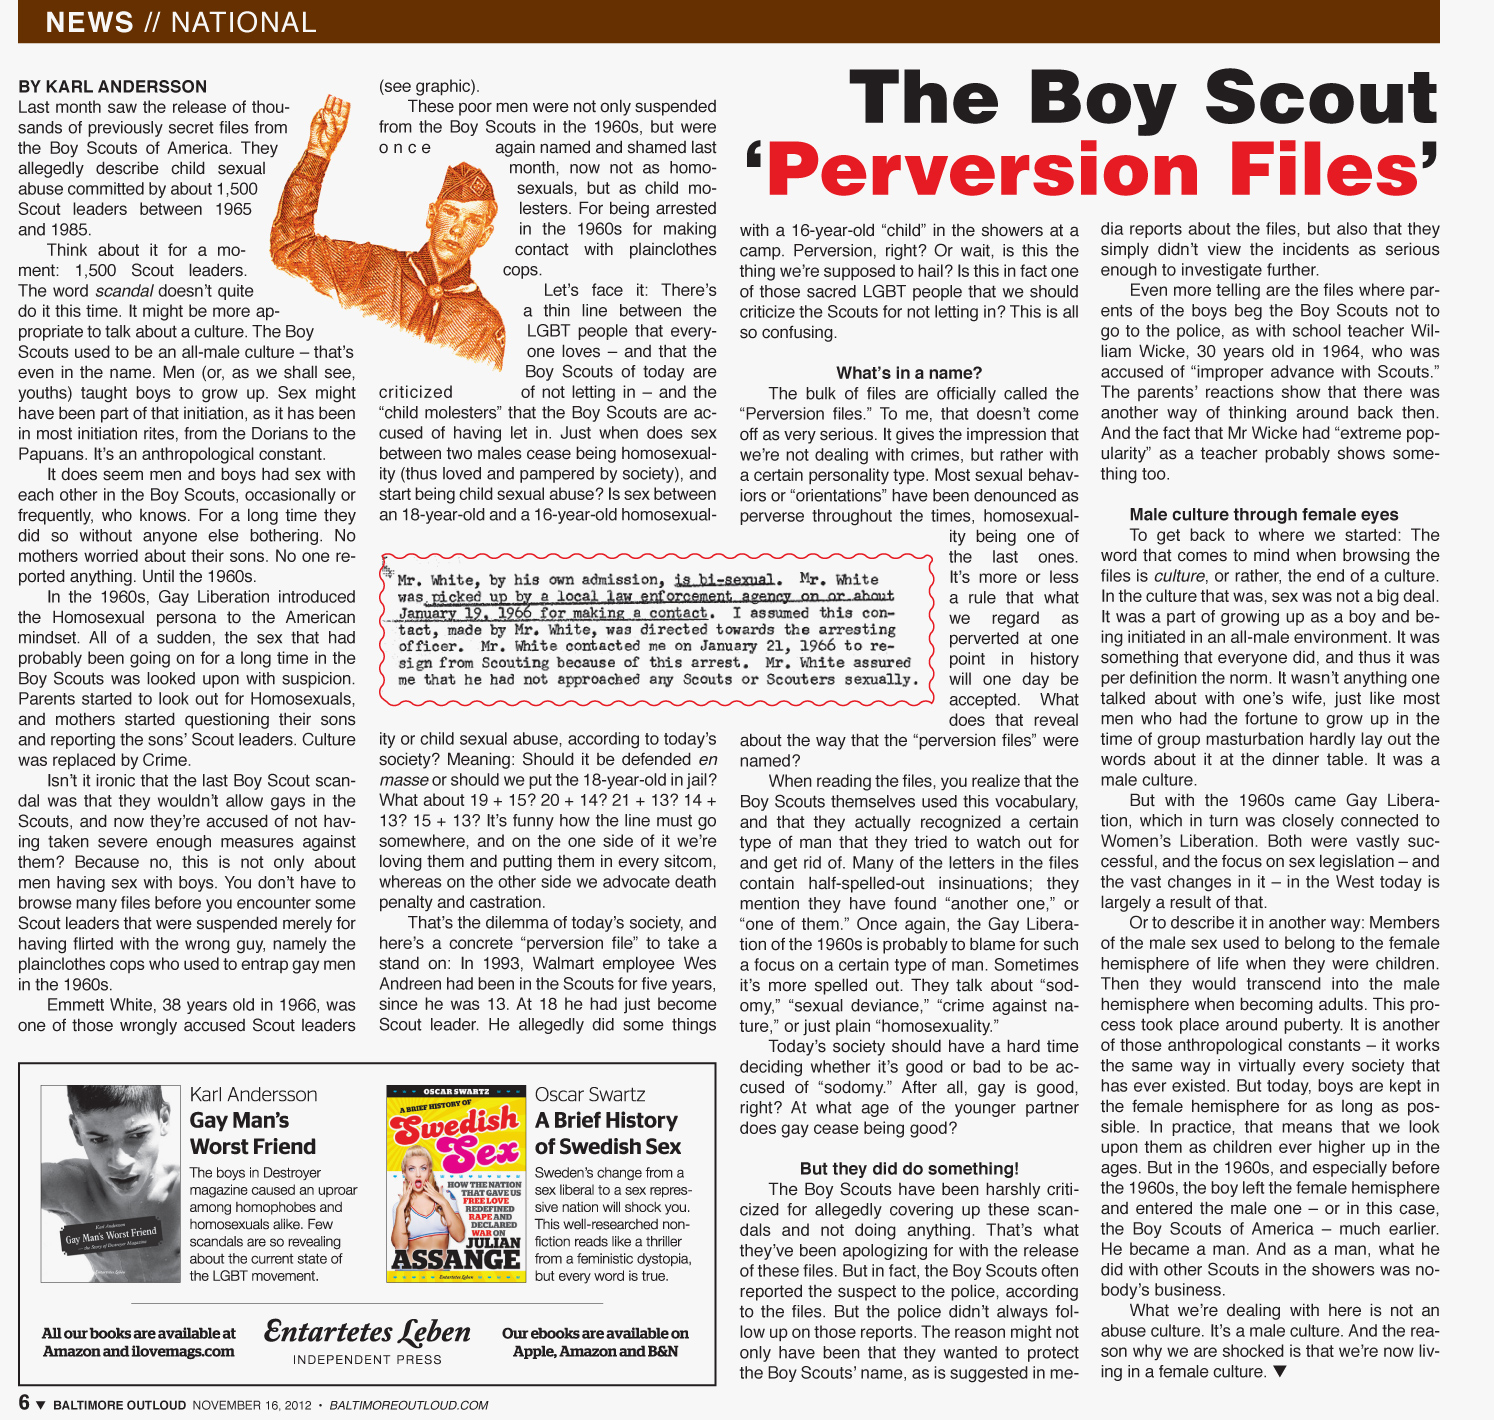 Baltimore Outloud: The Boy Scout 'Perversion Files' by Karl Andersson